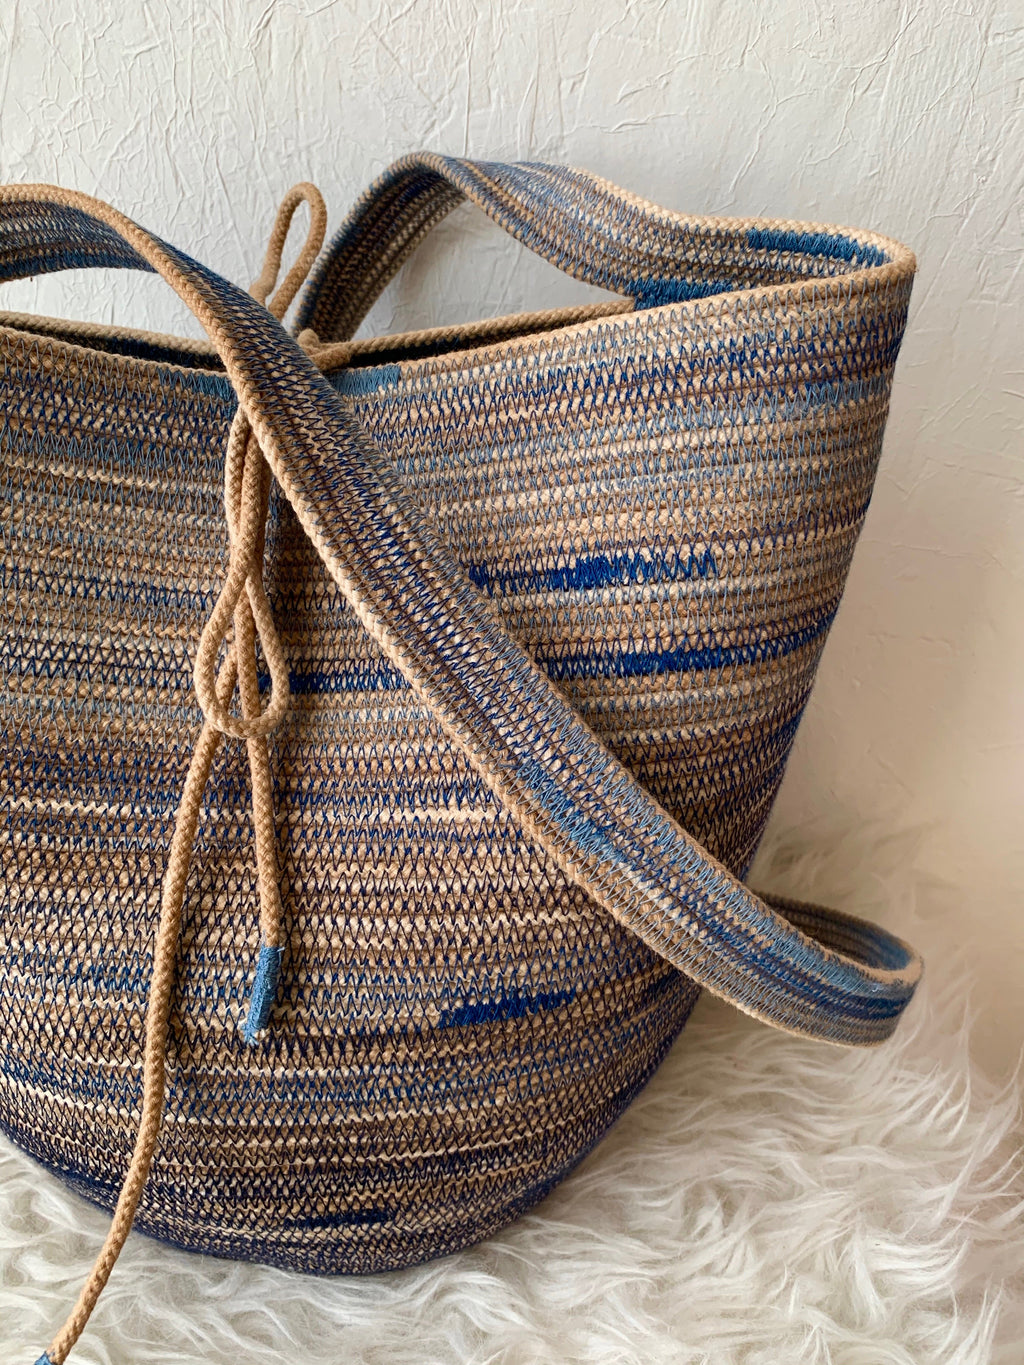 naturally dyed handmade rope basket